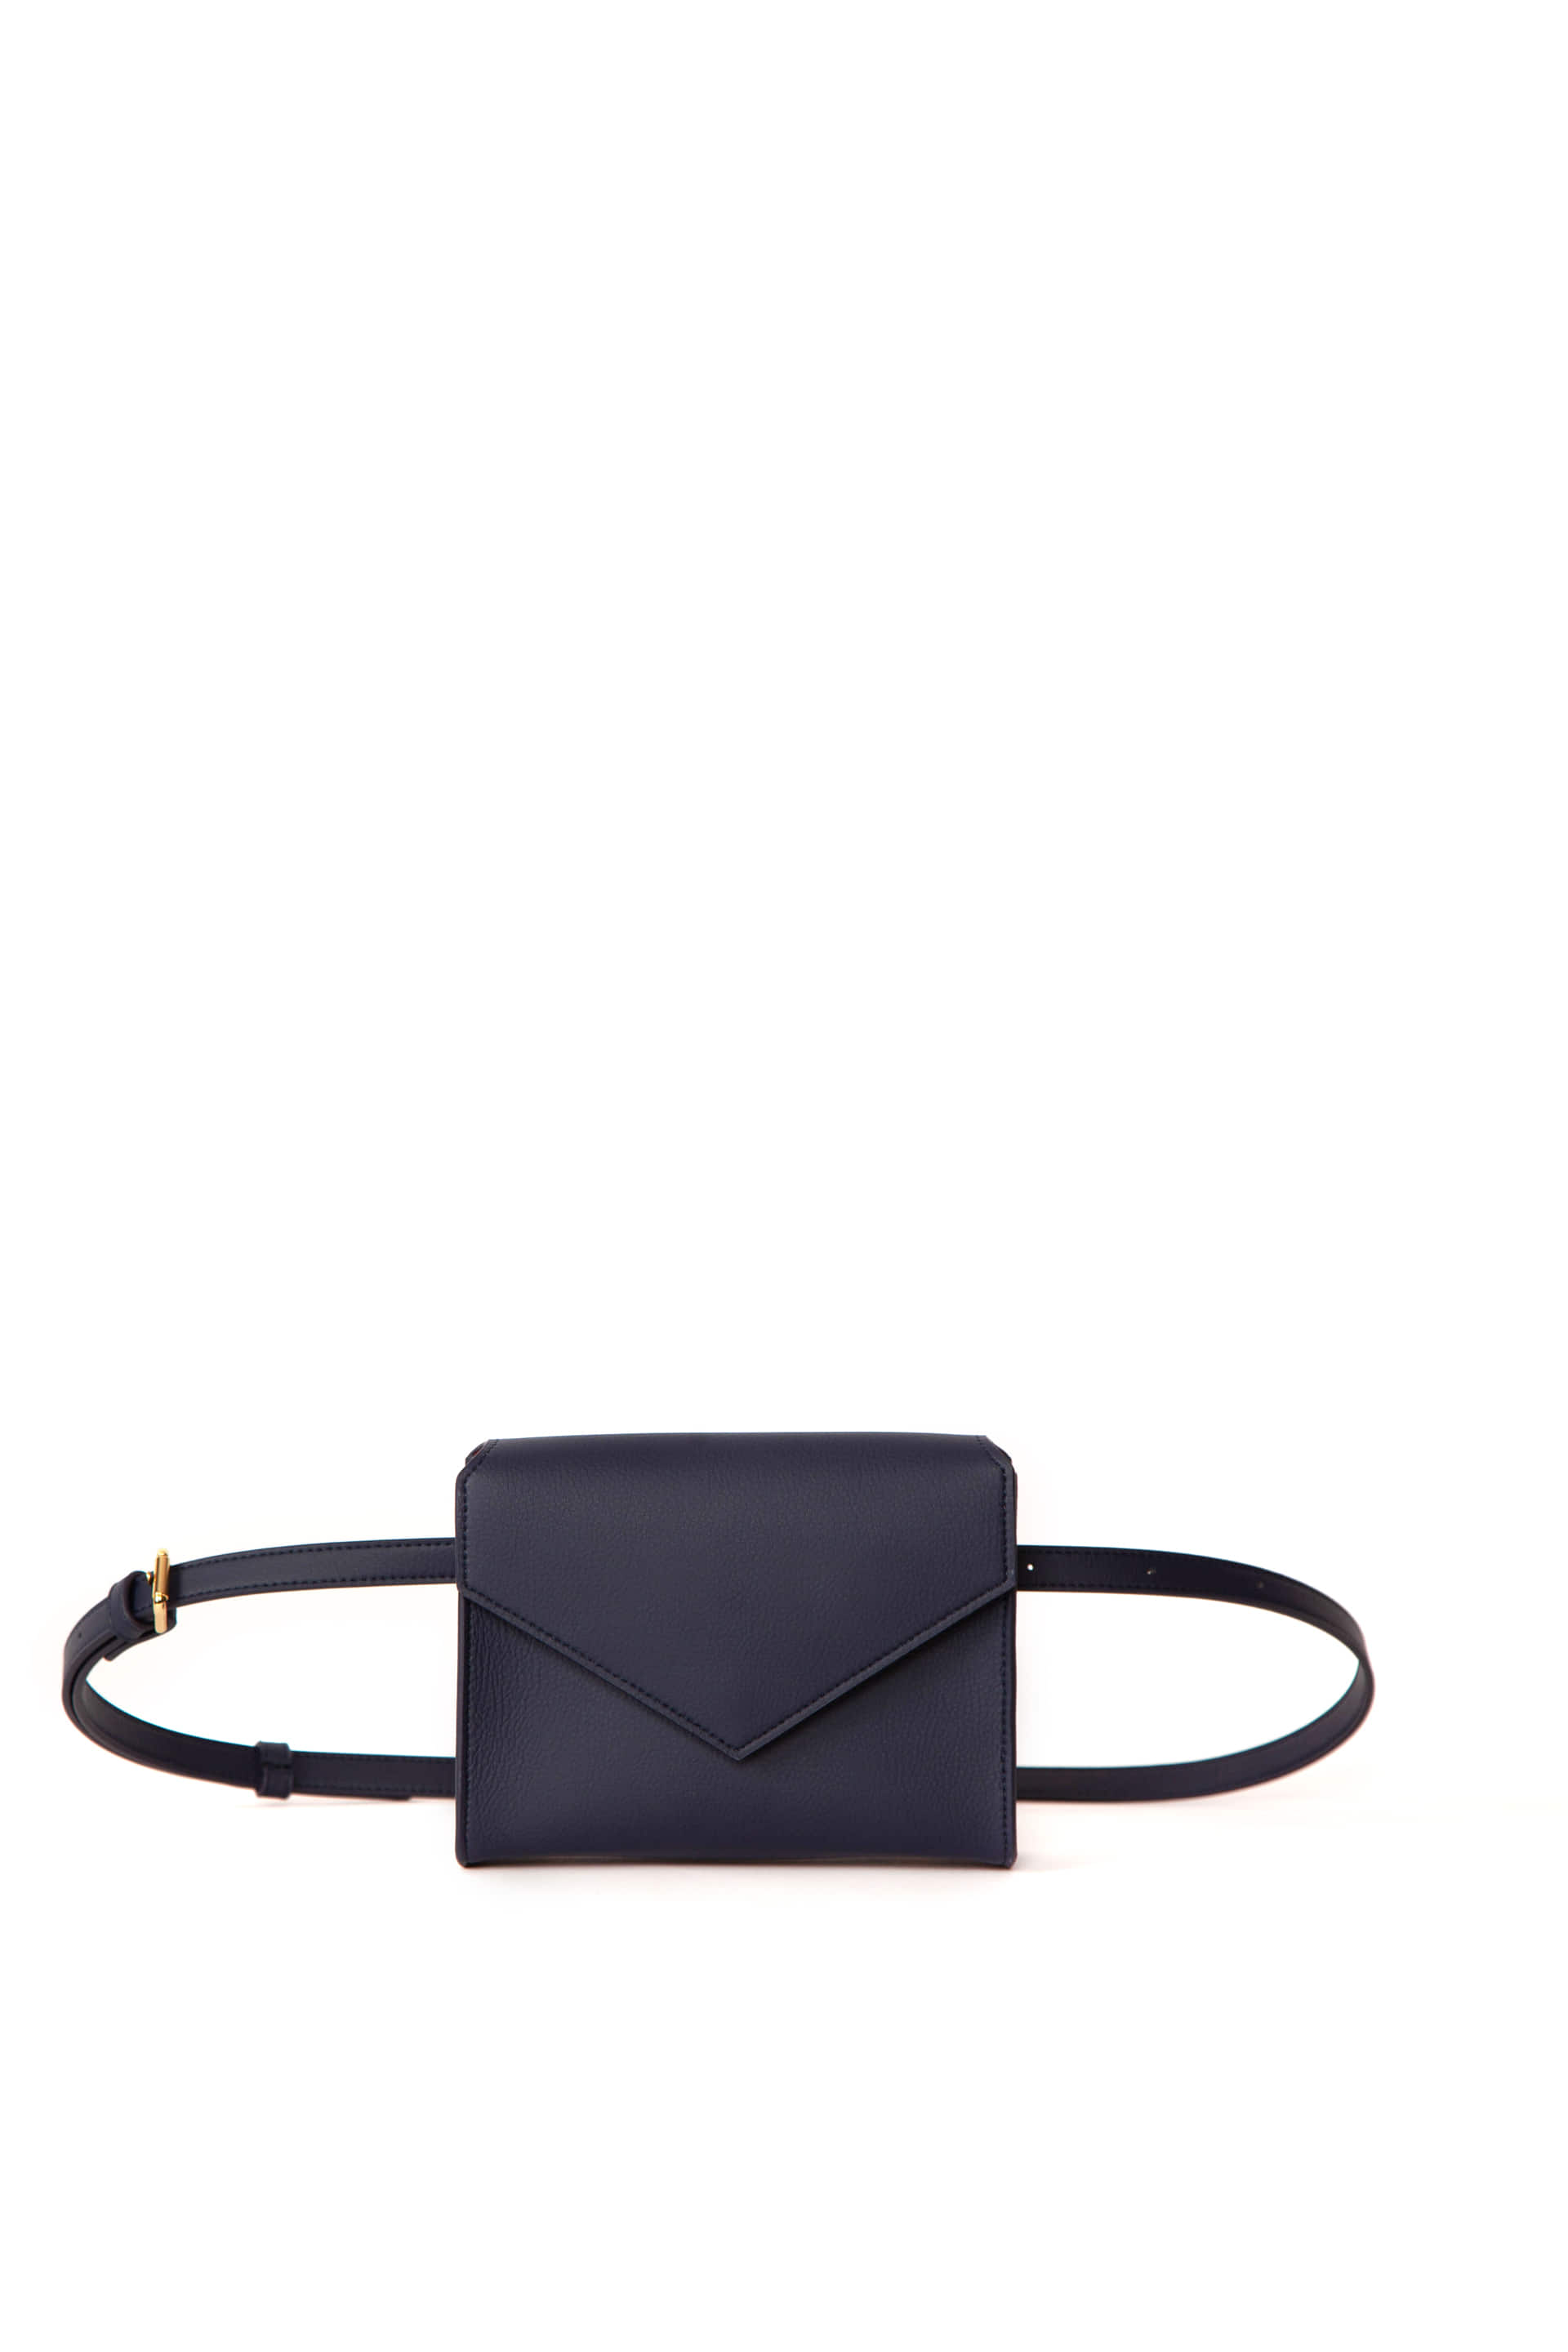 4-way BELT BAG 09 Navy